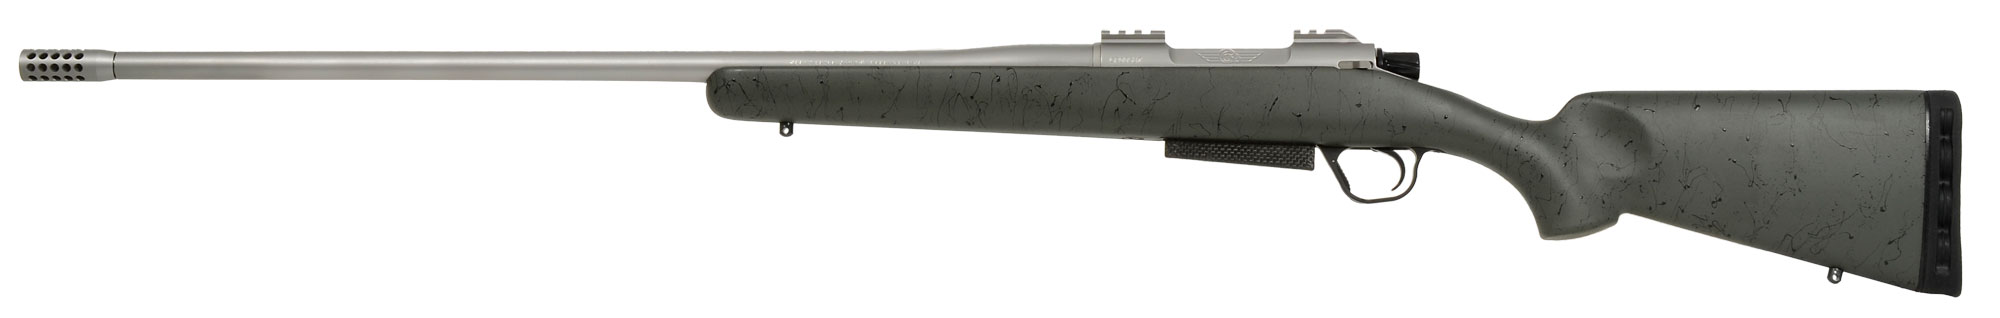 Christensen Arms Classic Steel 7 Rem Mag Green Rifle